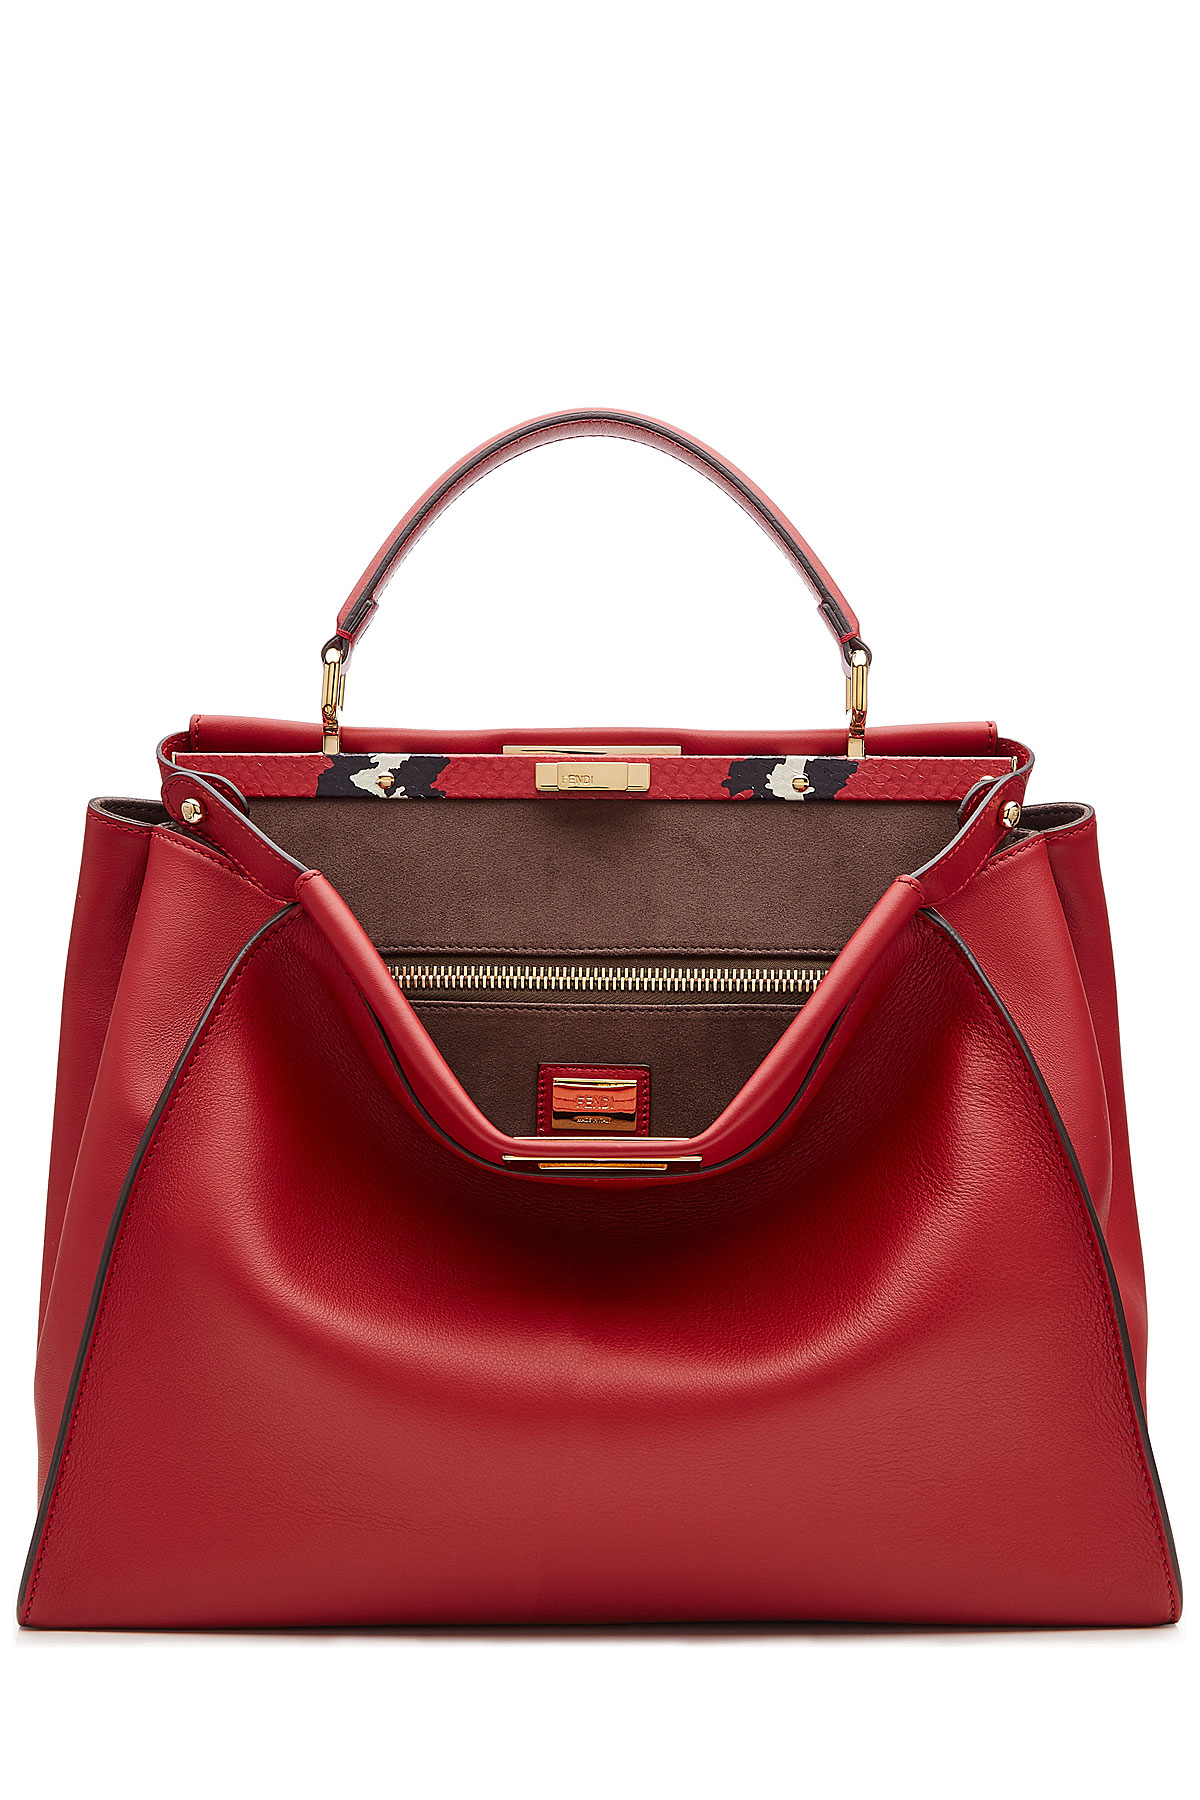 Lyst - Fendi Peekaboo Leather Tote - Red in Red acba374cabb6b